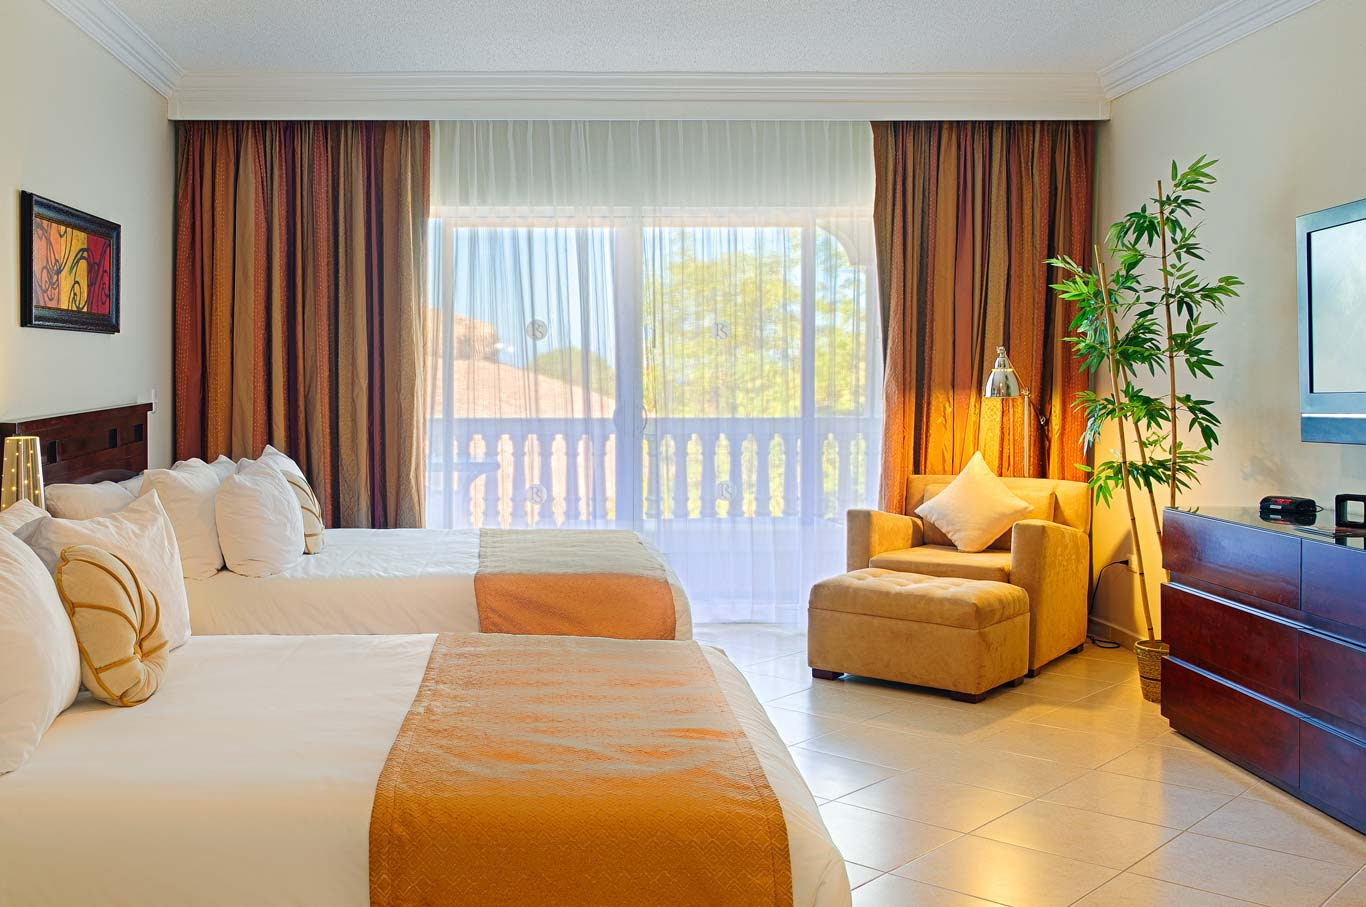 LifeStyle Tropical Resort  Puerto Plata  LifeStyle